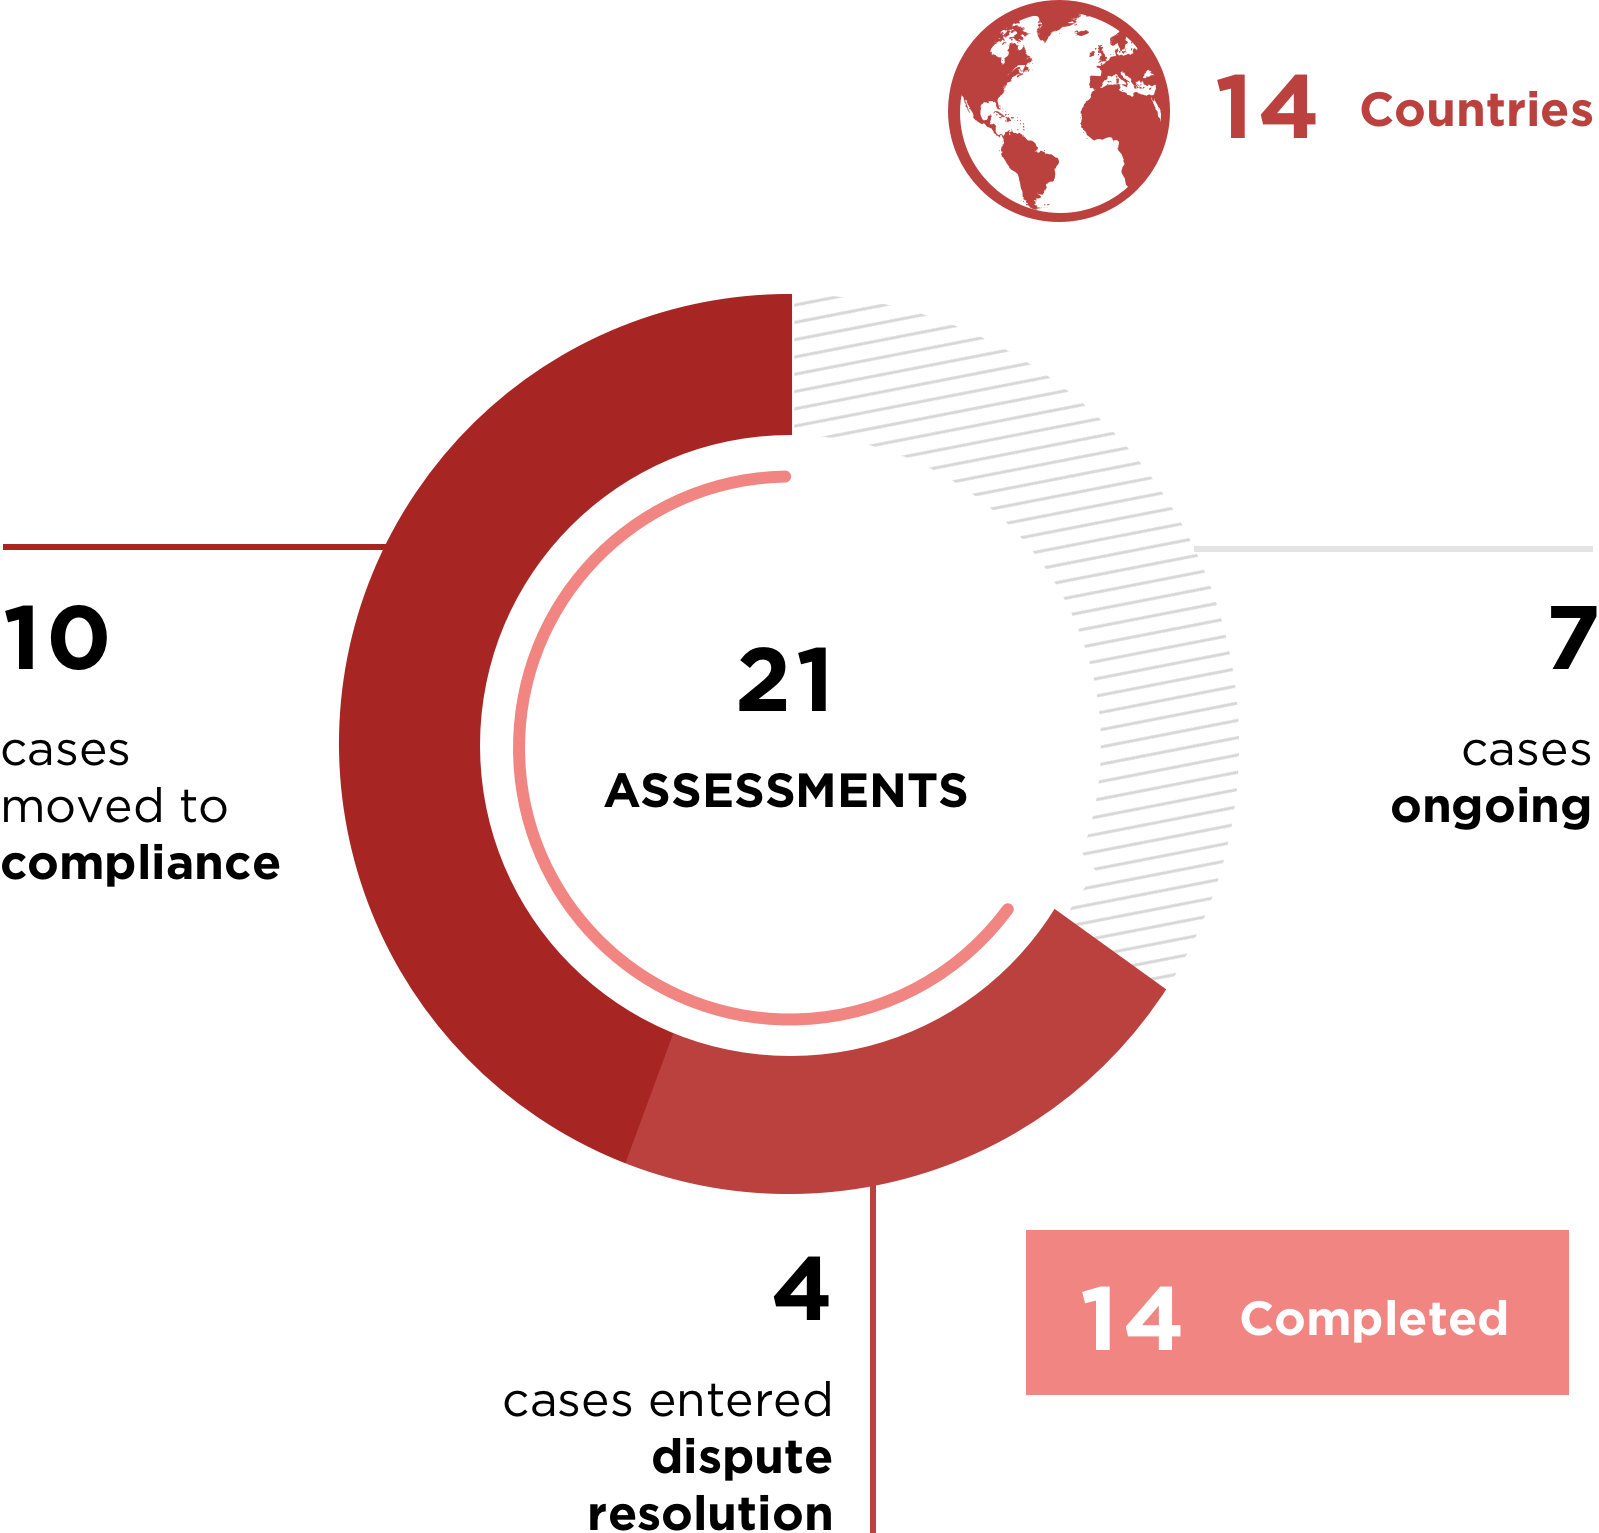 21 Assessments; 14 Countries; 10 cases moved to Compliance; 7 cases ongoing;  4 cases entered Dispute Resolution; 14 Completed